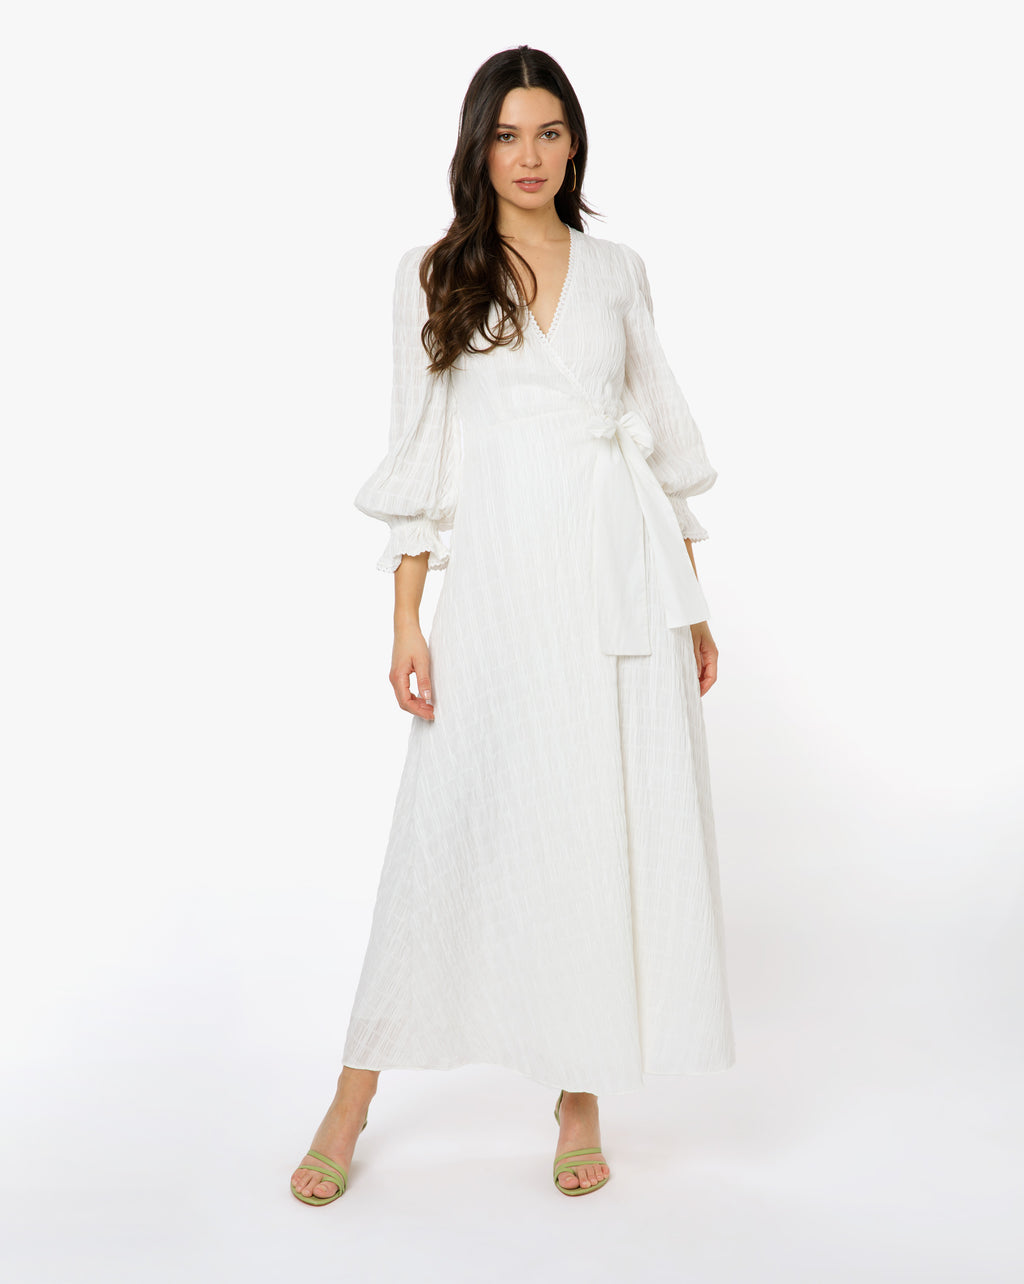 Camilla Dress - Solid White